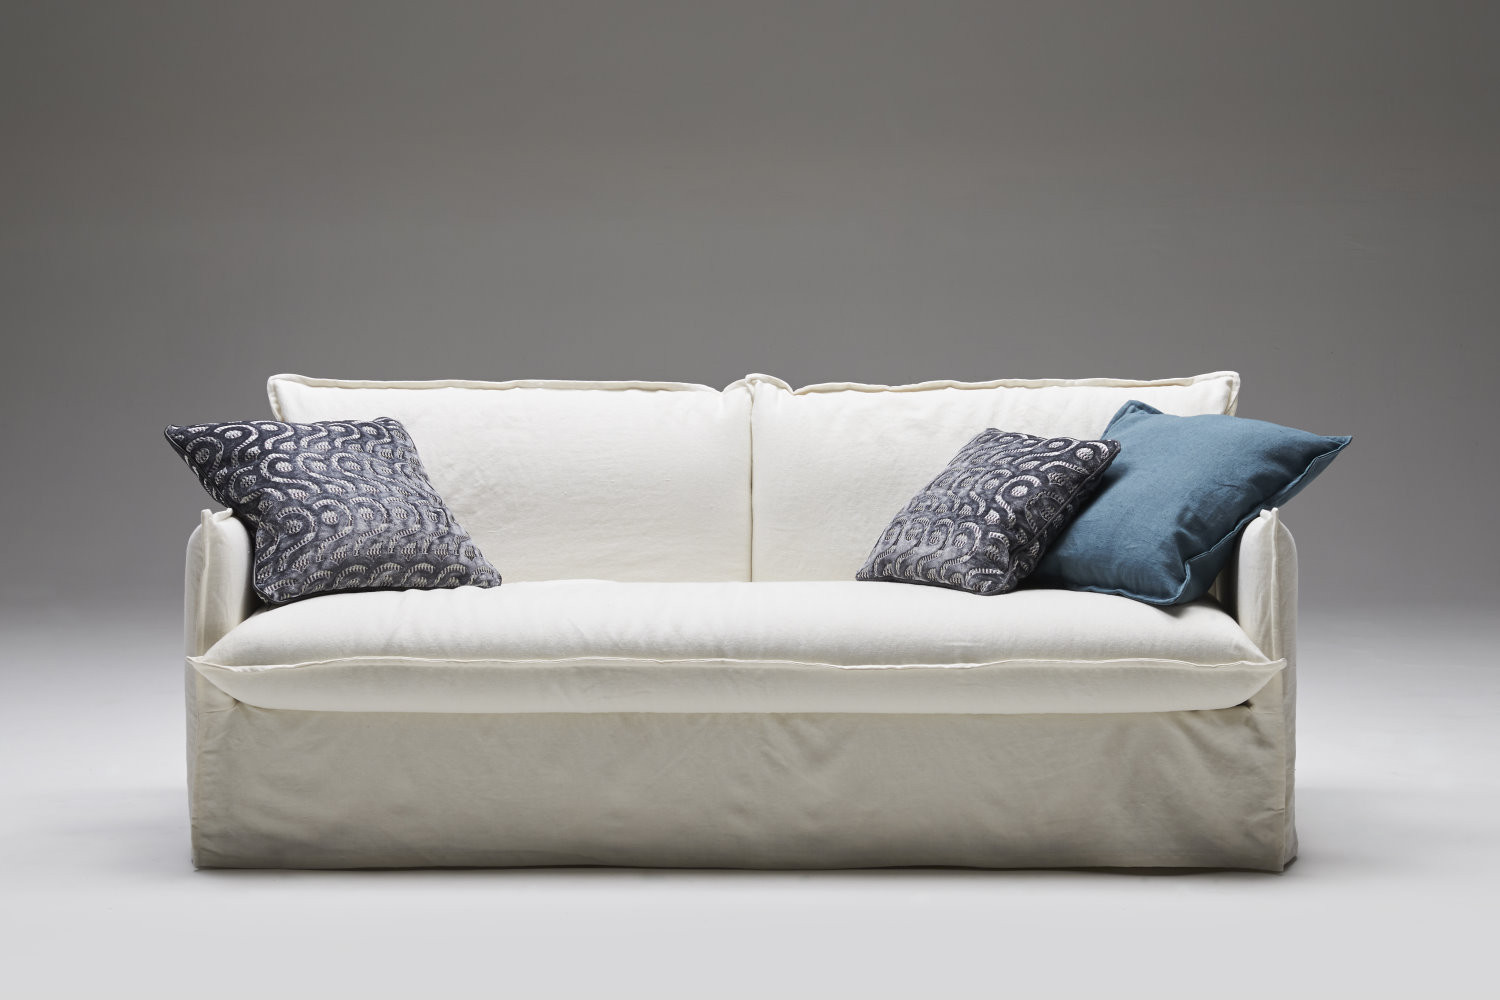 Clarke sofa bed for a daily use for Divano letto 180 cm